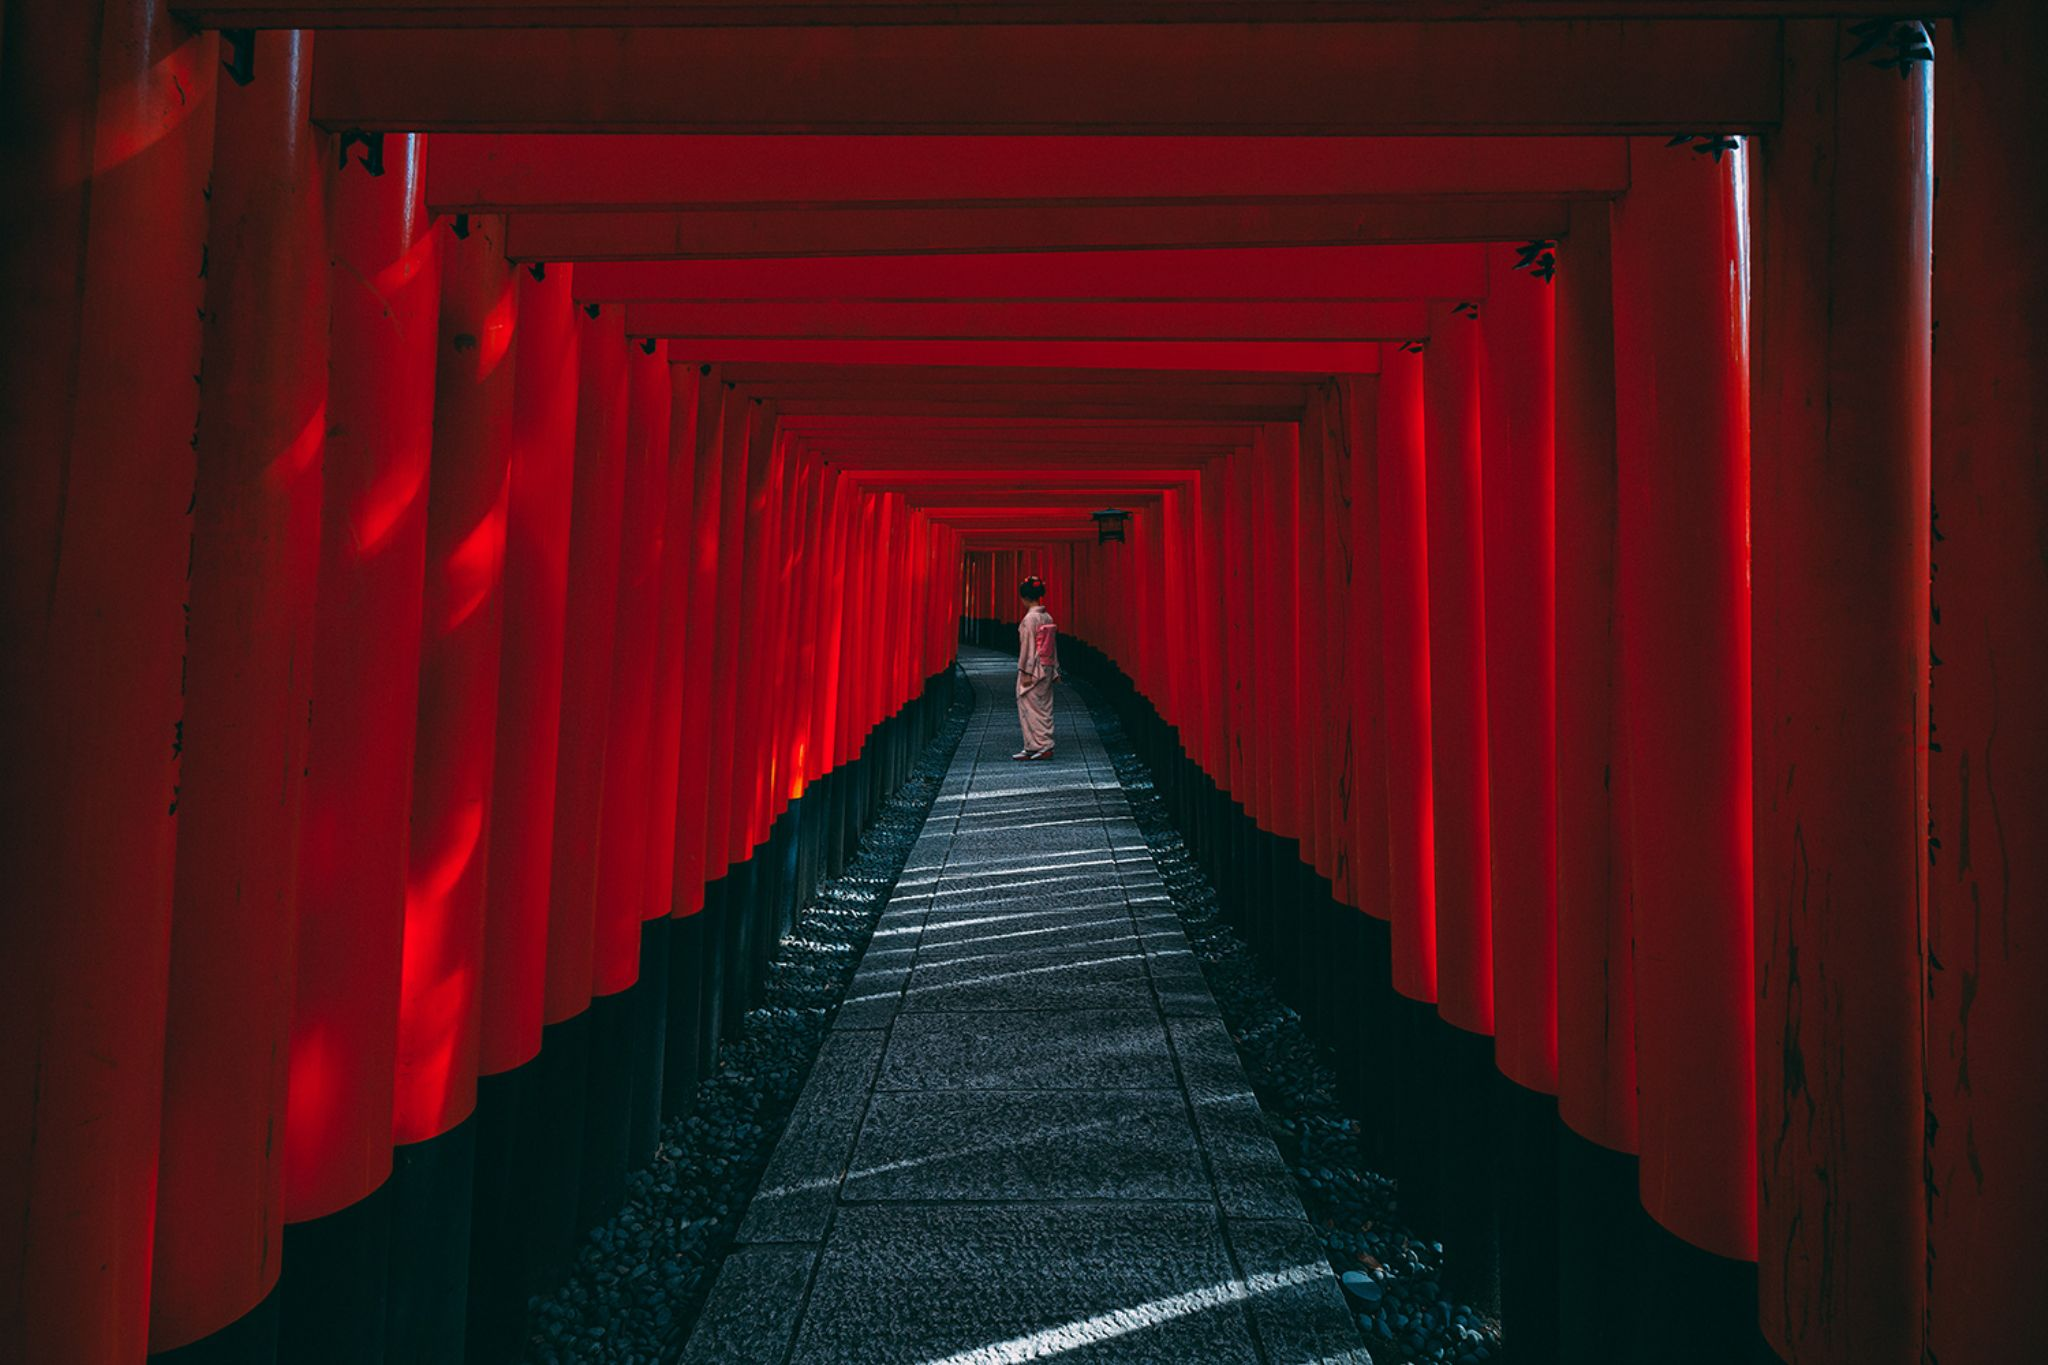 The Red Pathway by Peter Stewart